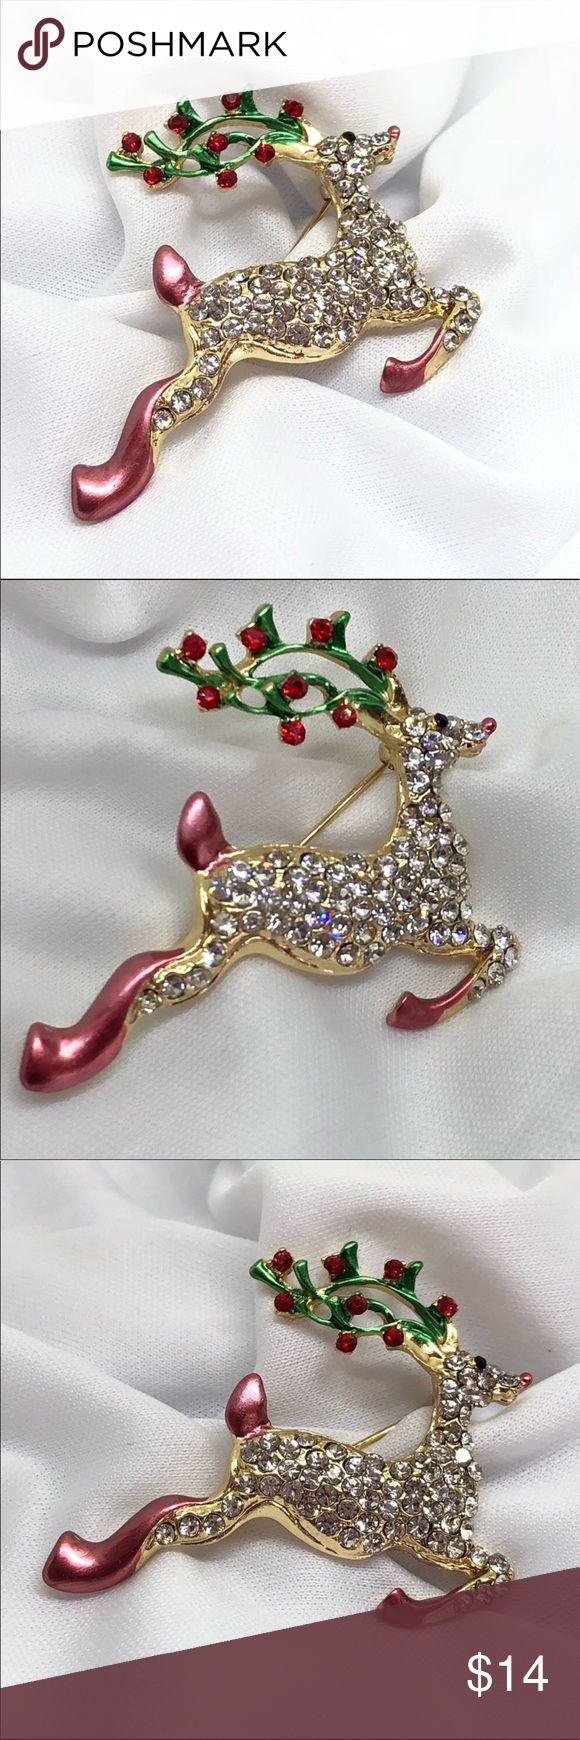 """🆕Gold & Rhinestone Rudolph Reindeer Pin A festive 2"""" x 1 3/4"""" gold and rhinestone Rudolph pin, complete with bright red node and festive enamel lights in his antlers! Very bright and sparkly; a challenge to capture in photos because it's so bright! A perfect addition to your jacket for the Holidays! Who doesn't love our underdog hero Rudolph? Jewelry Brooches"""